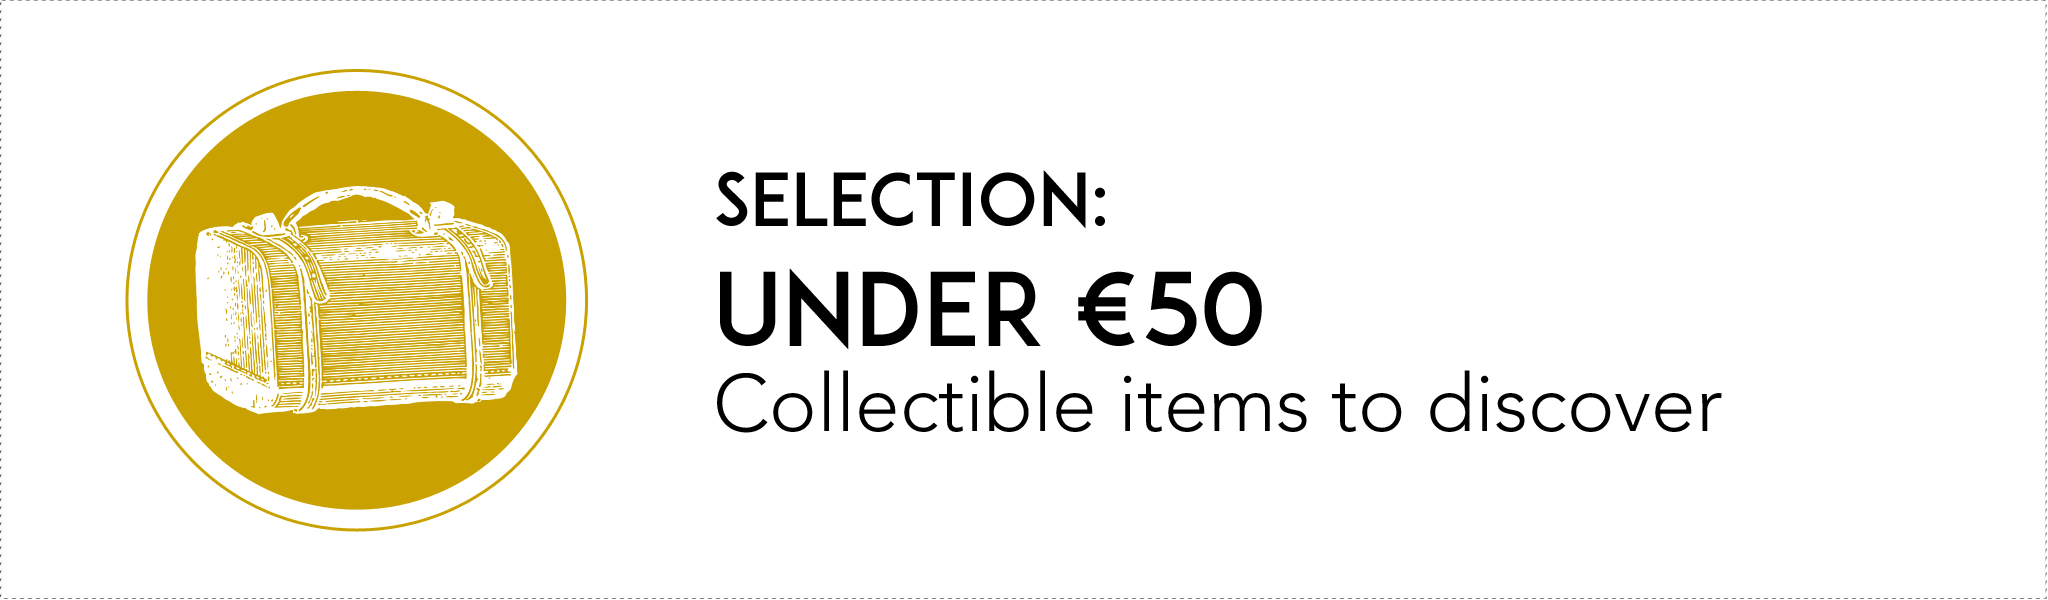 Selection: under 50 euros - Collectible items to discover